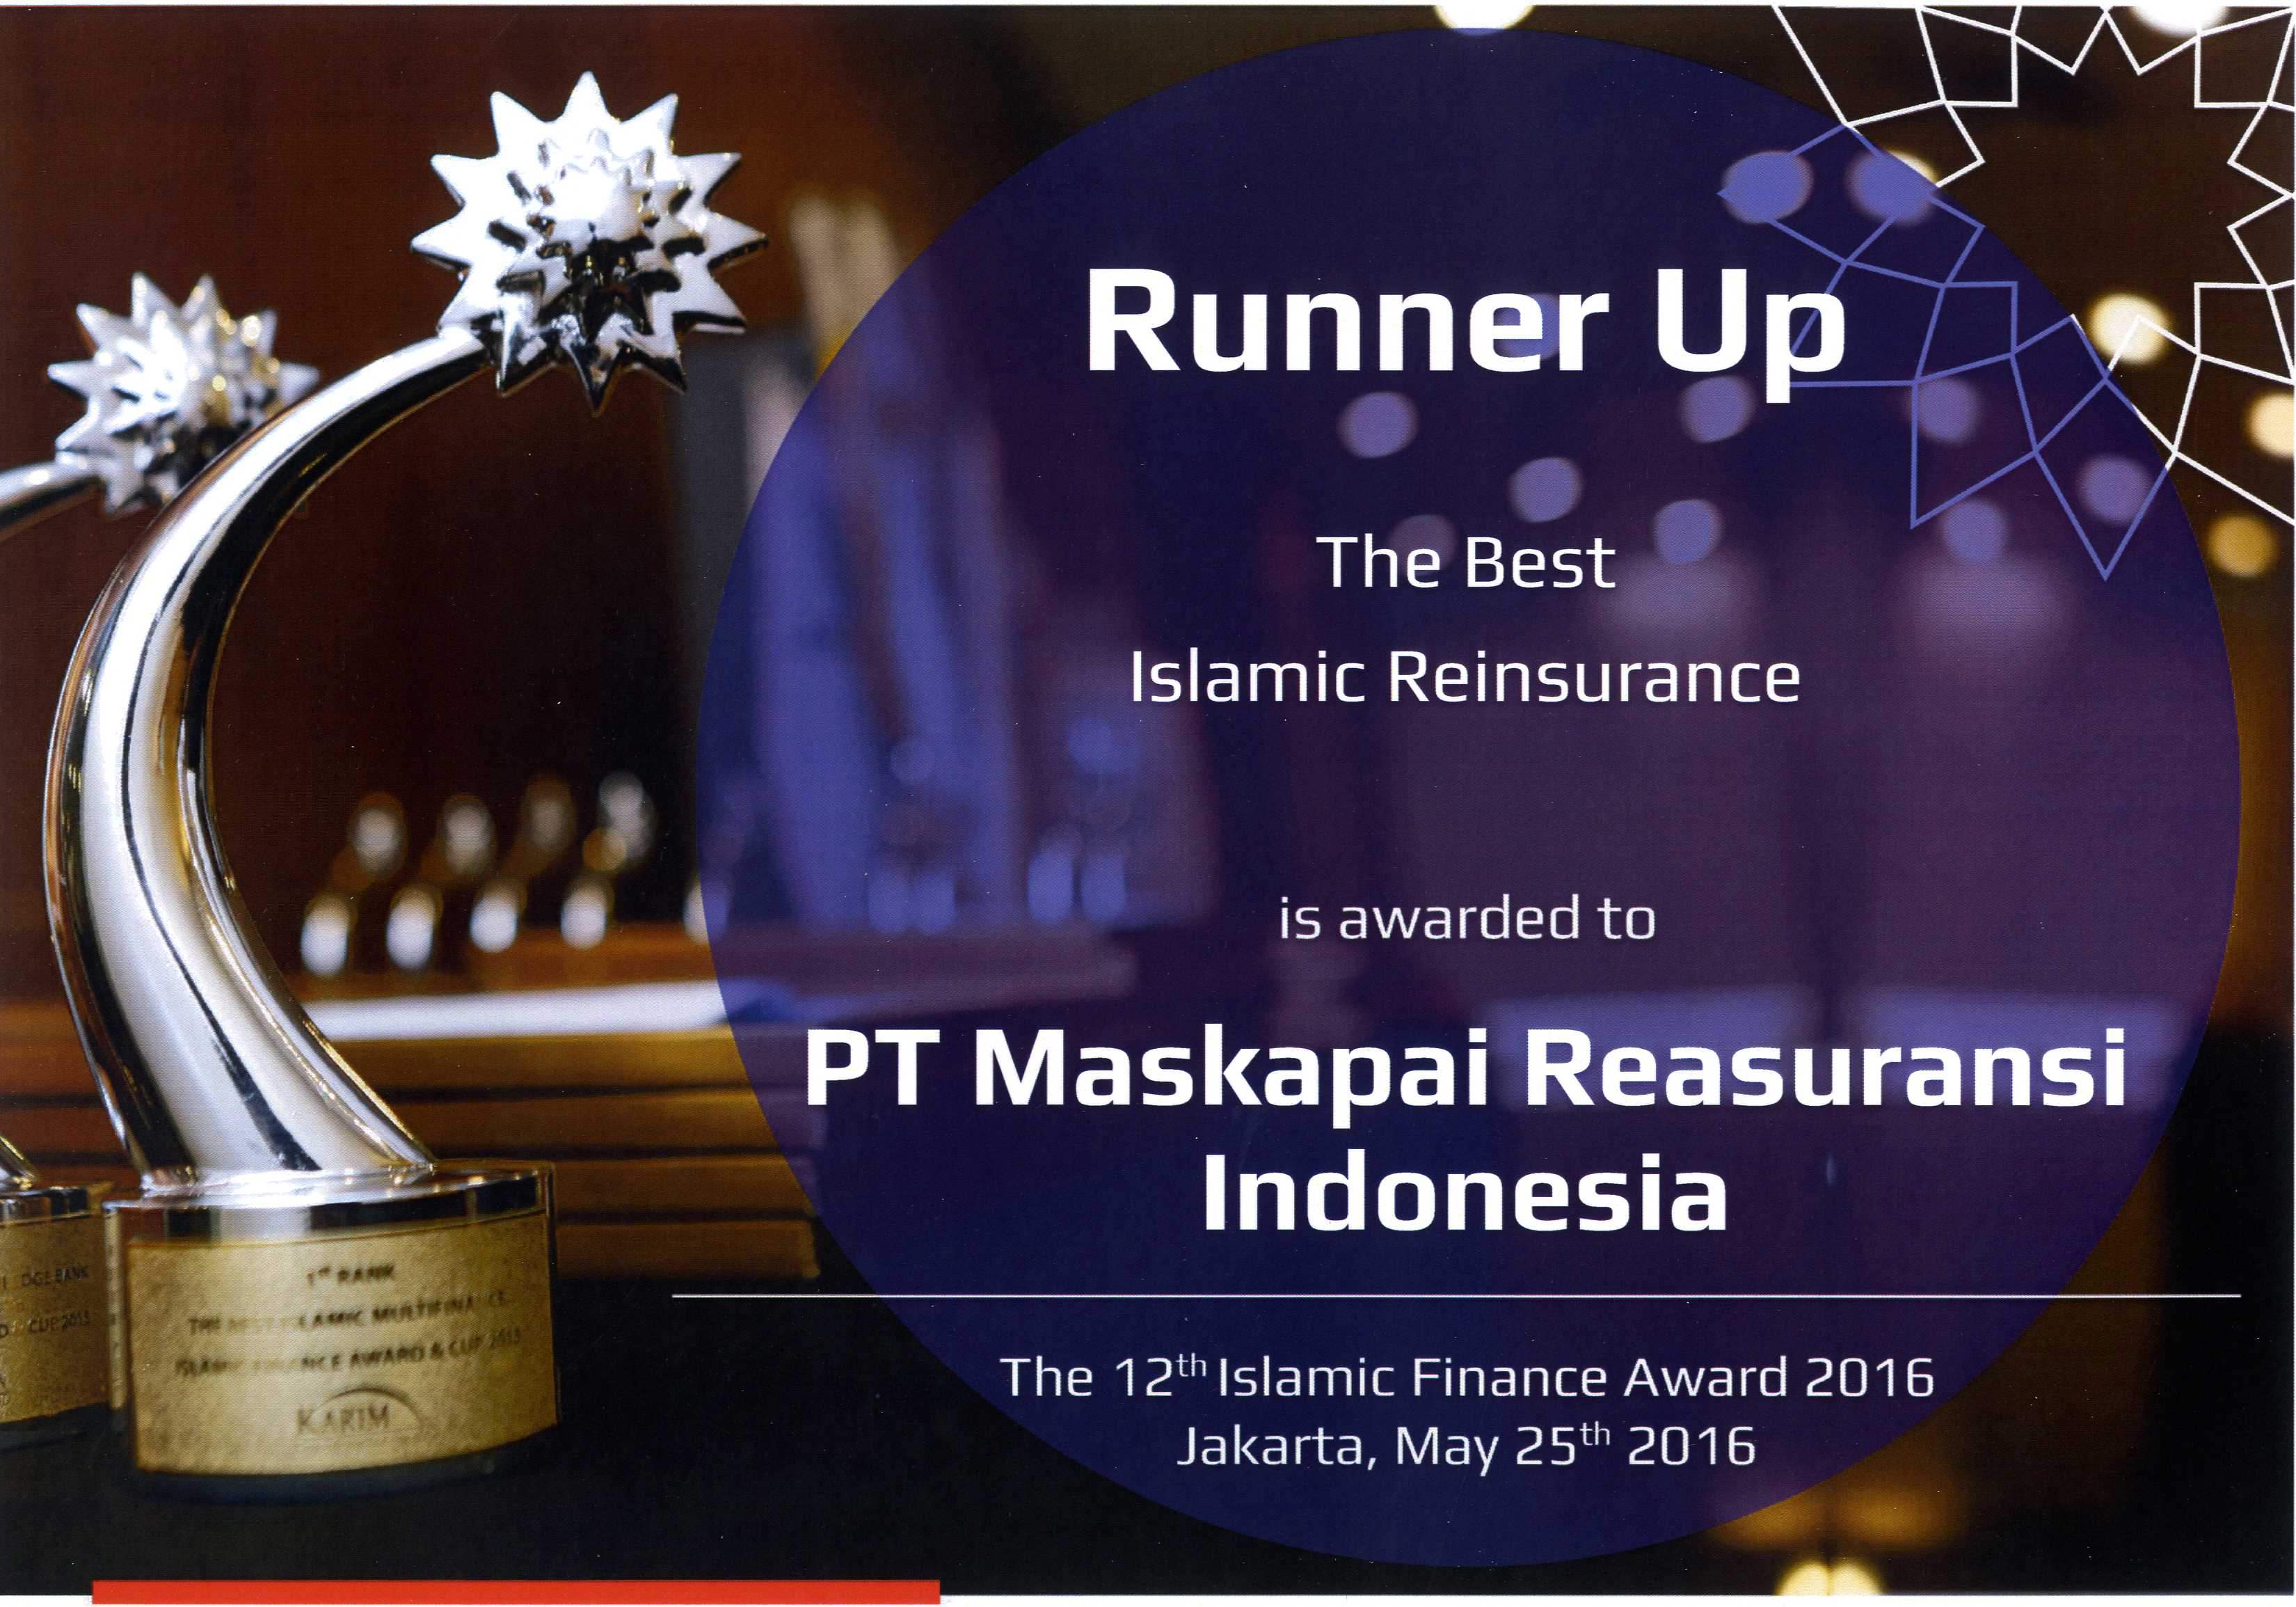 Karim Consulting Indonesia : Runner Up The Best Islamic Reinsurance